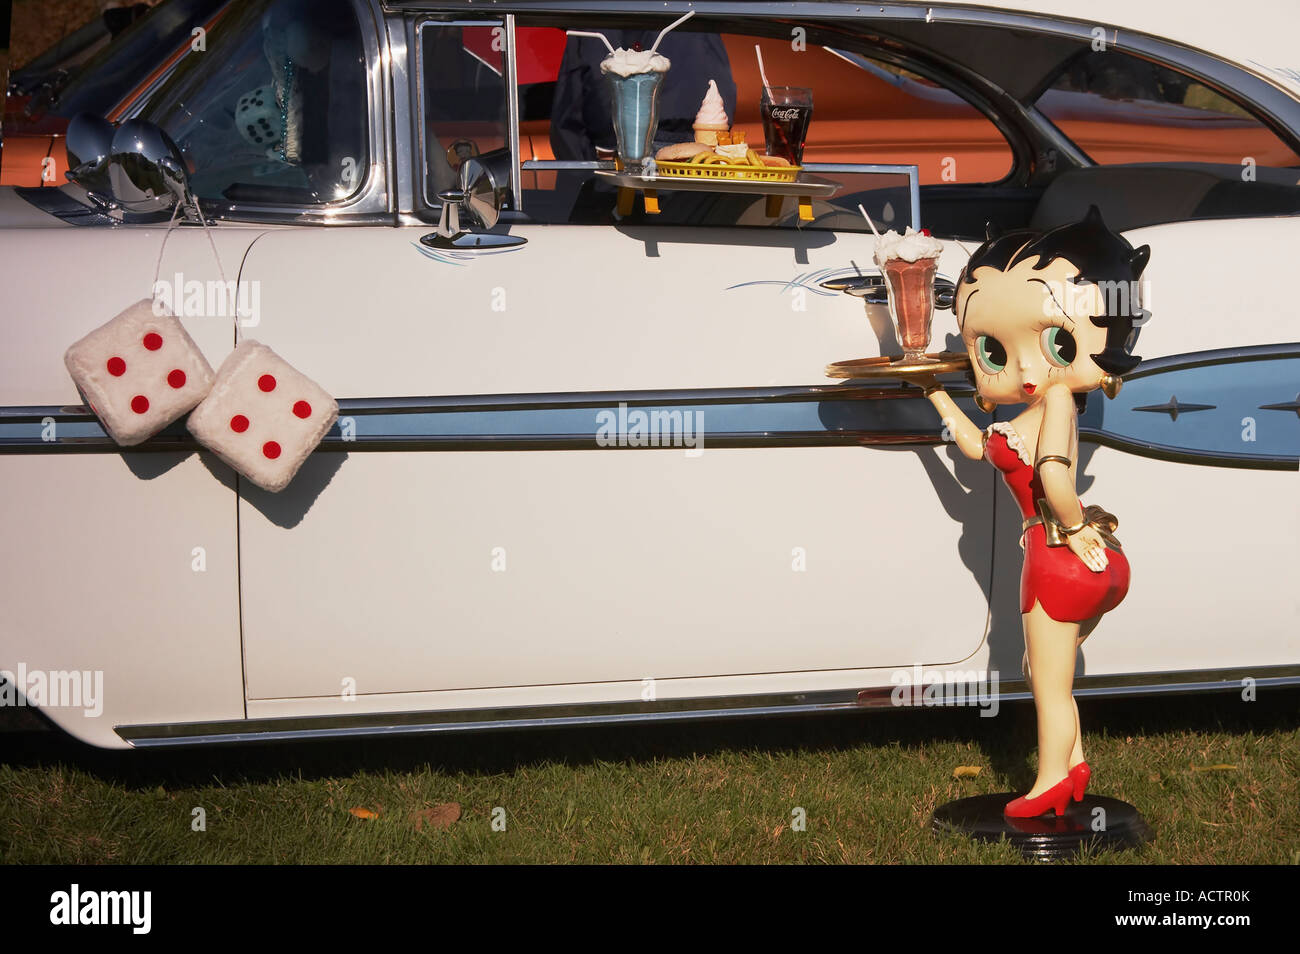 Betty Boop 1950s antique car and fluffy dice - Stock Image